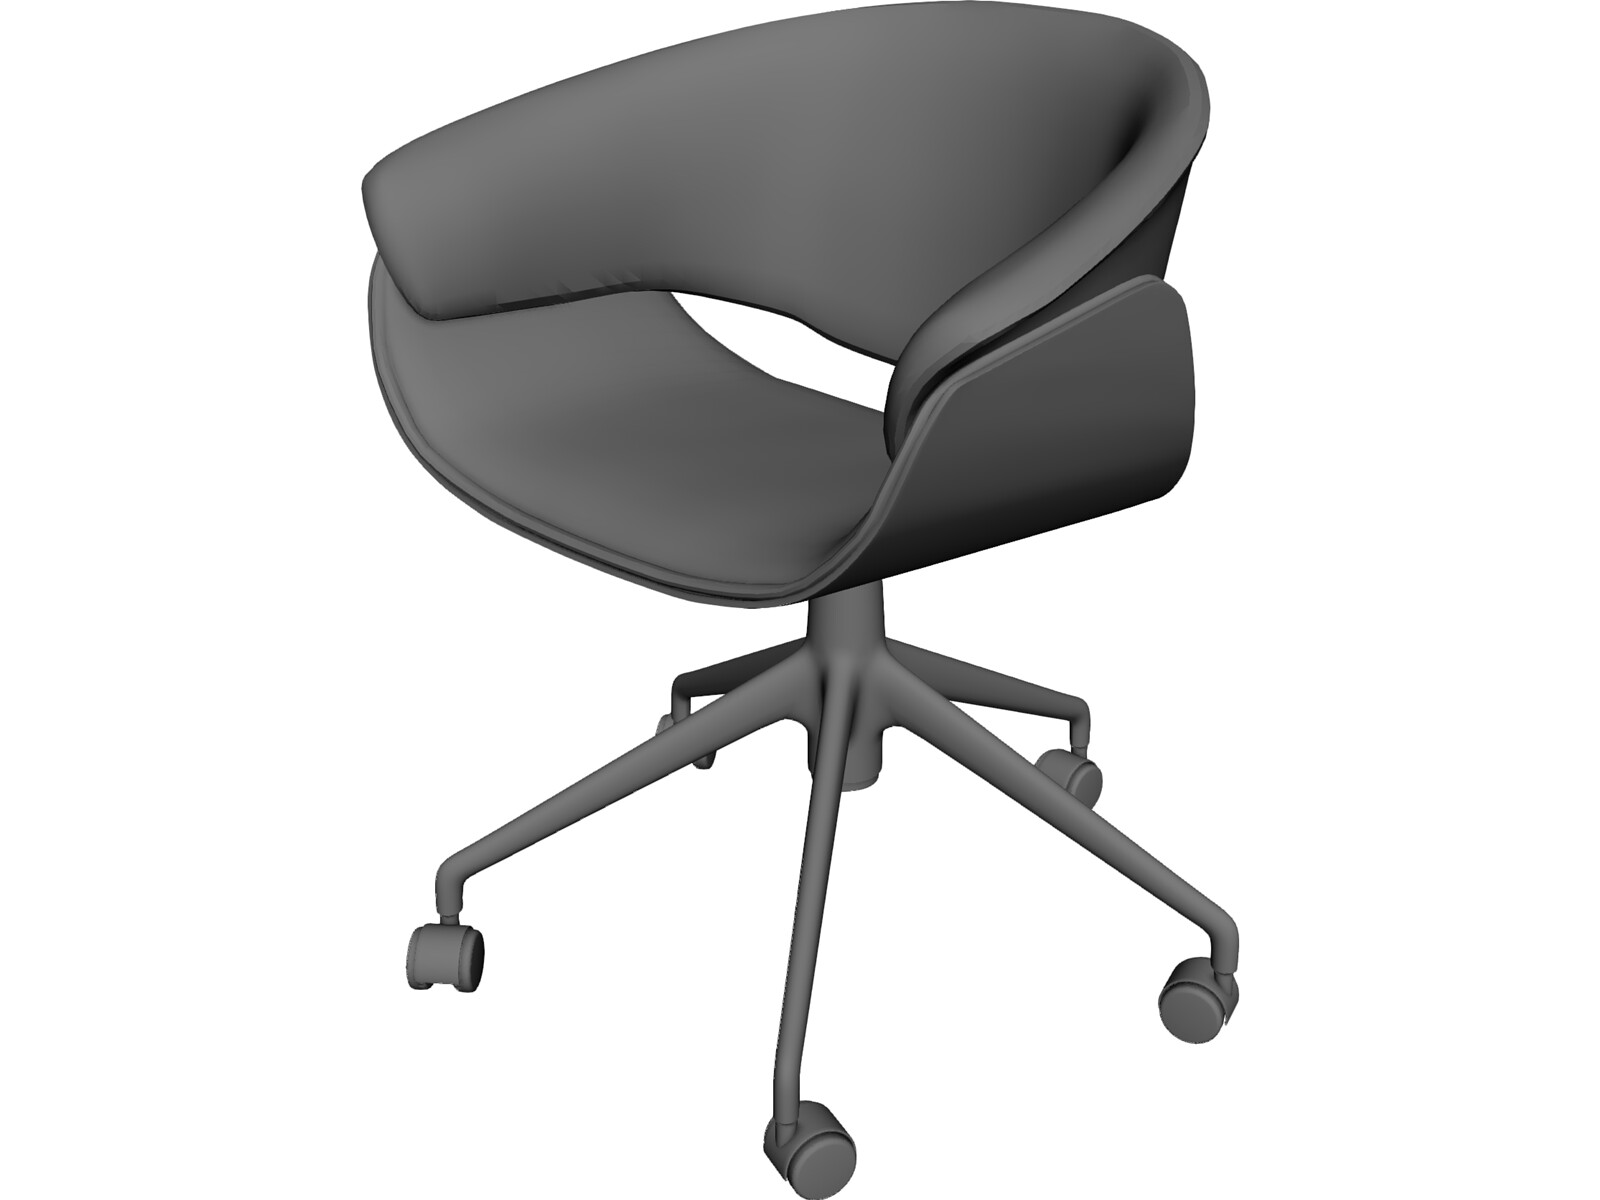 Sina chair 3d model 3d cad browser for Chair 3d model maya